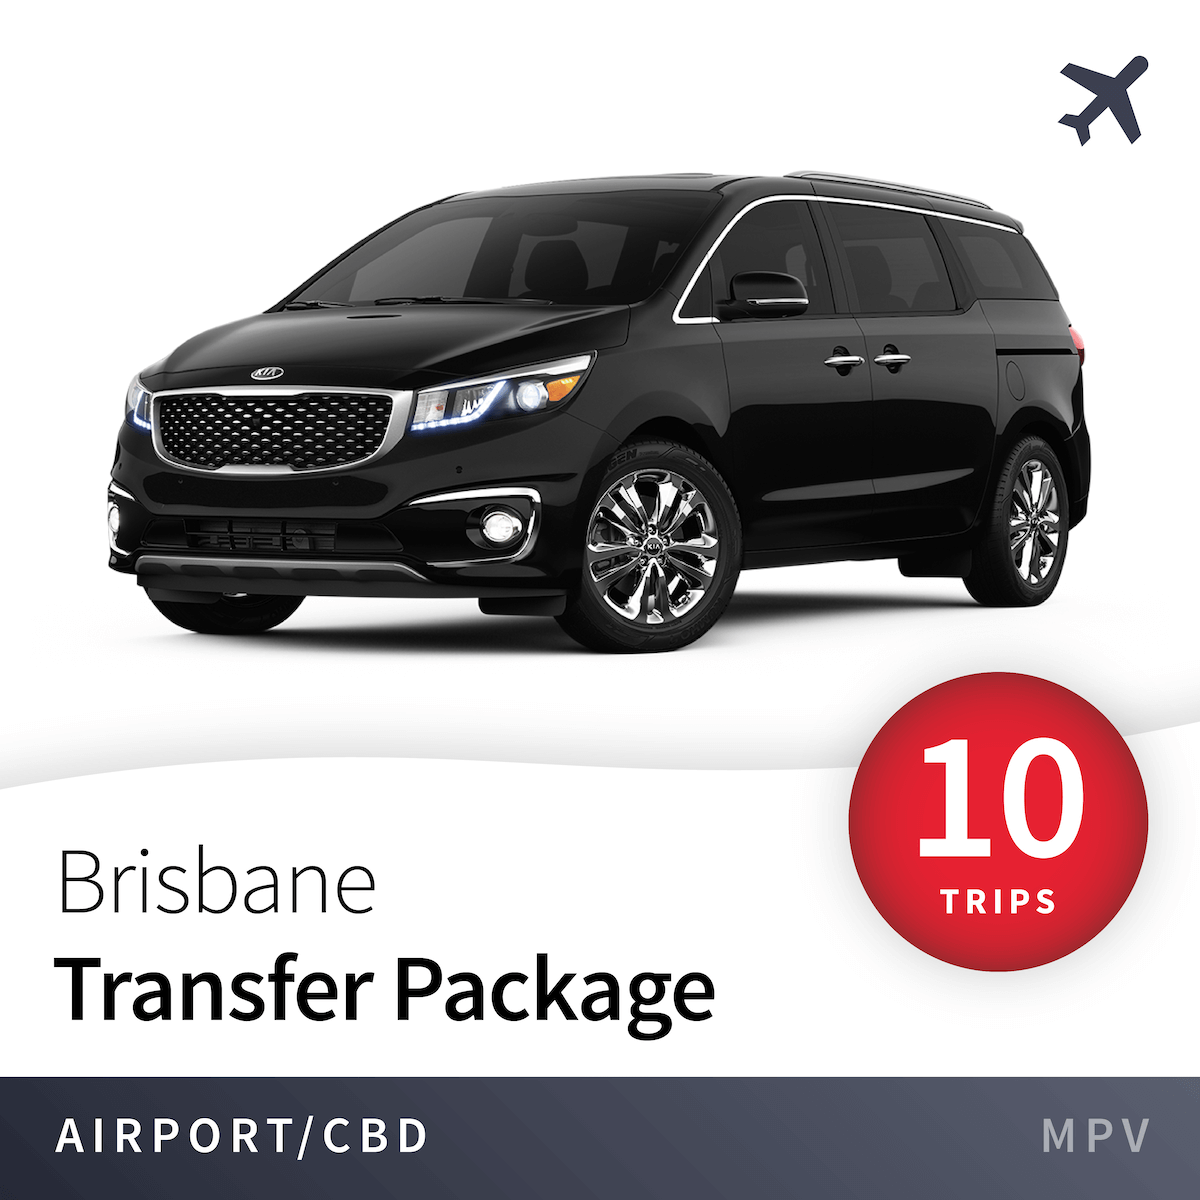 Brisbane Airport Transfer Package - MPV (10 Trips) 5